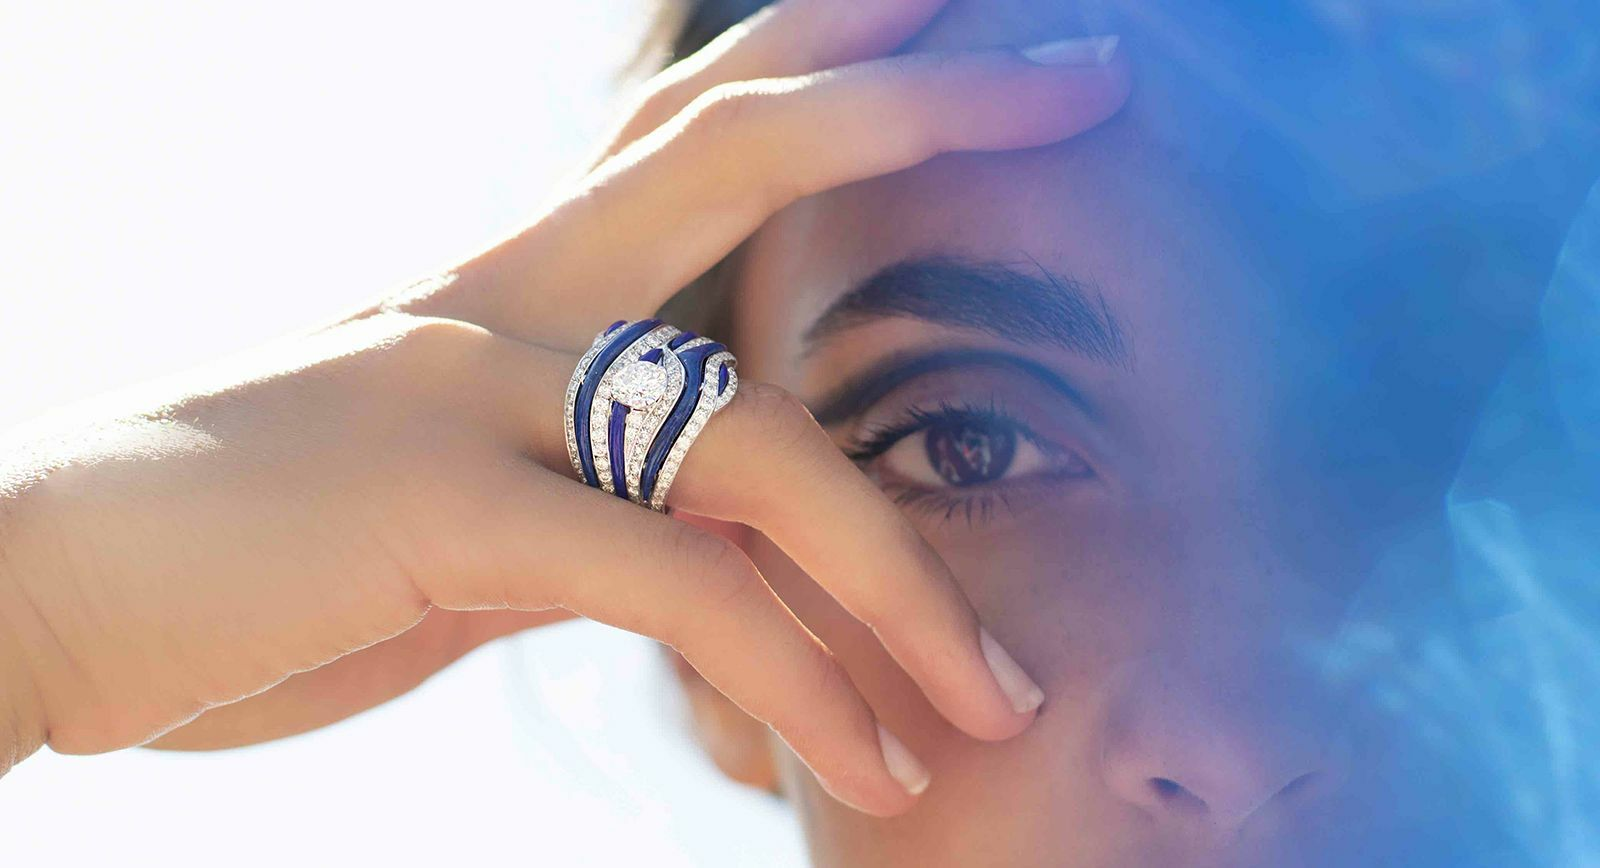 Mellerio Dits Meller 'Ondine' ring from the 'Le Ciottoli' collection with diamonds and lapis lazuli